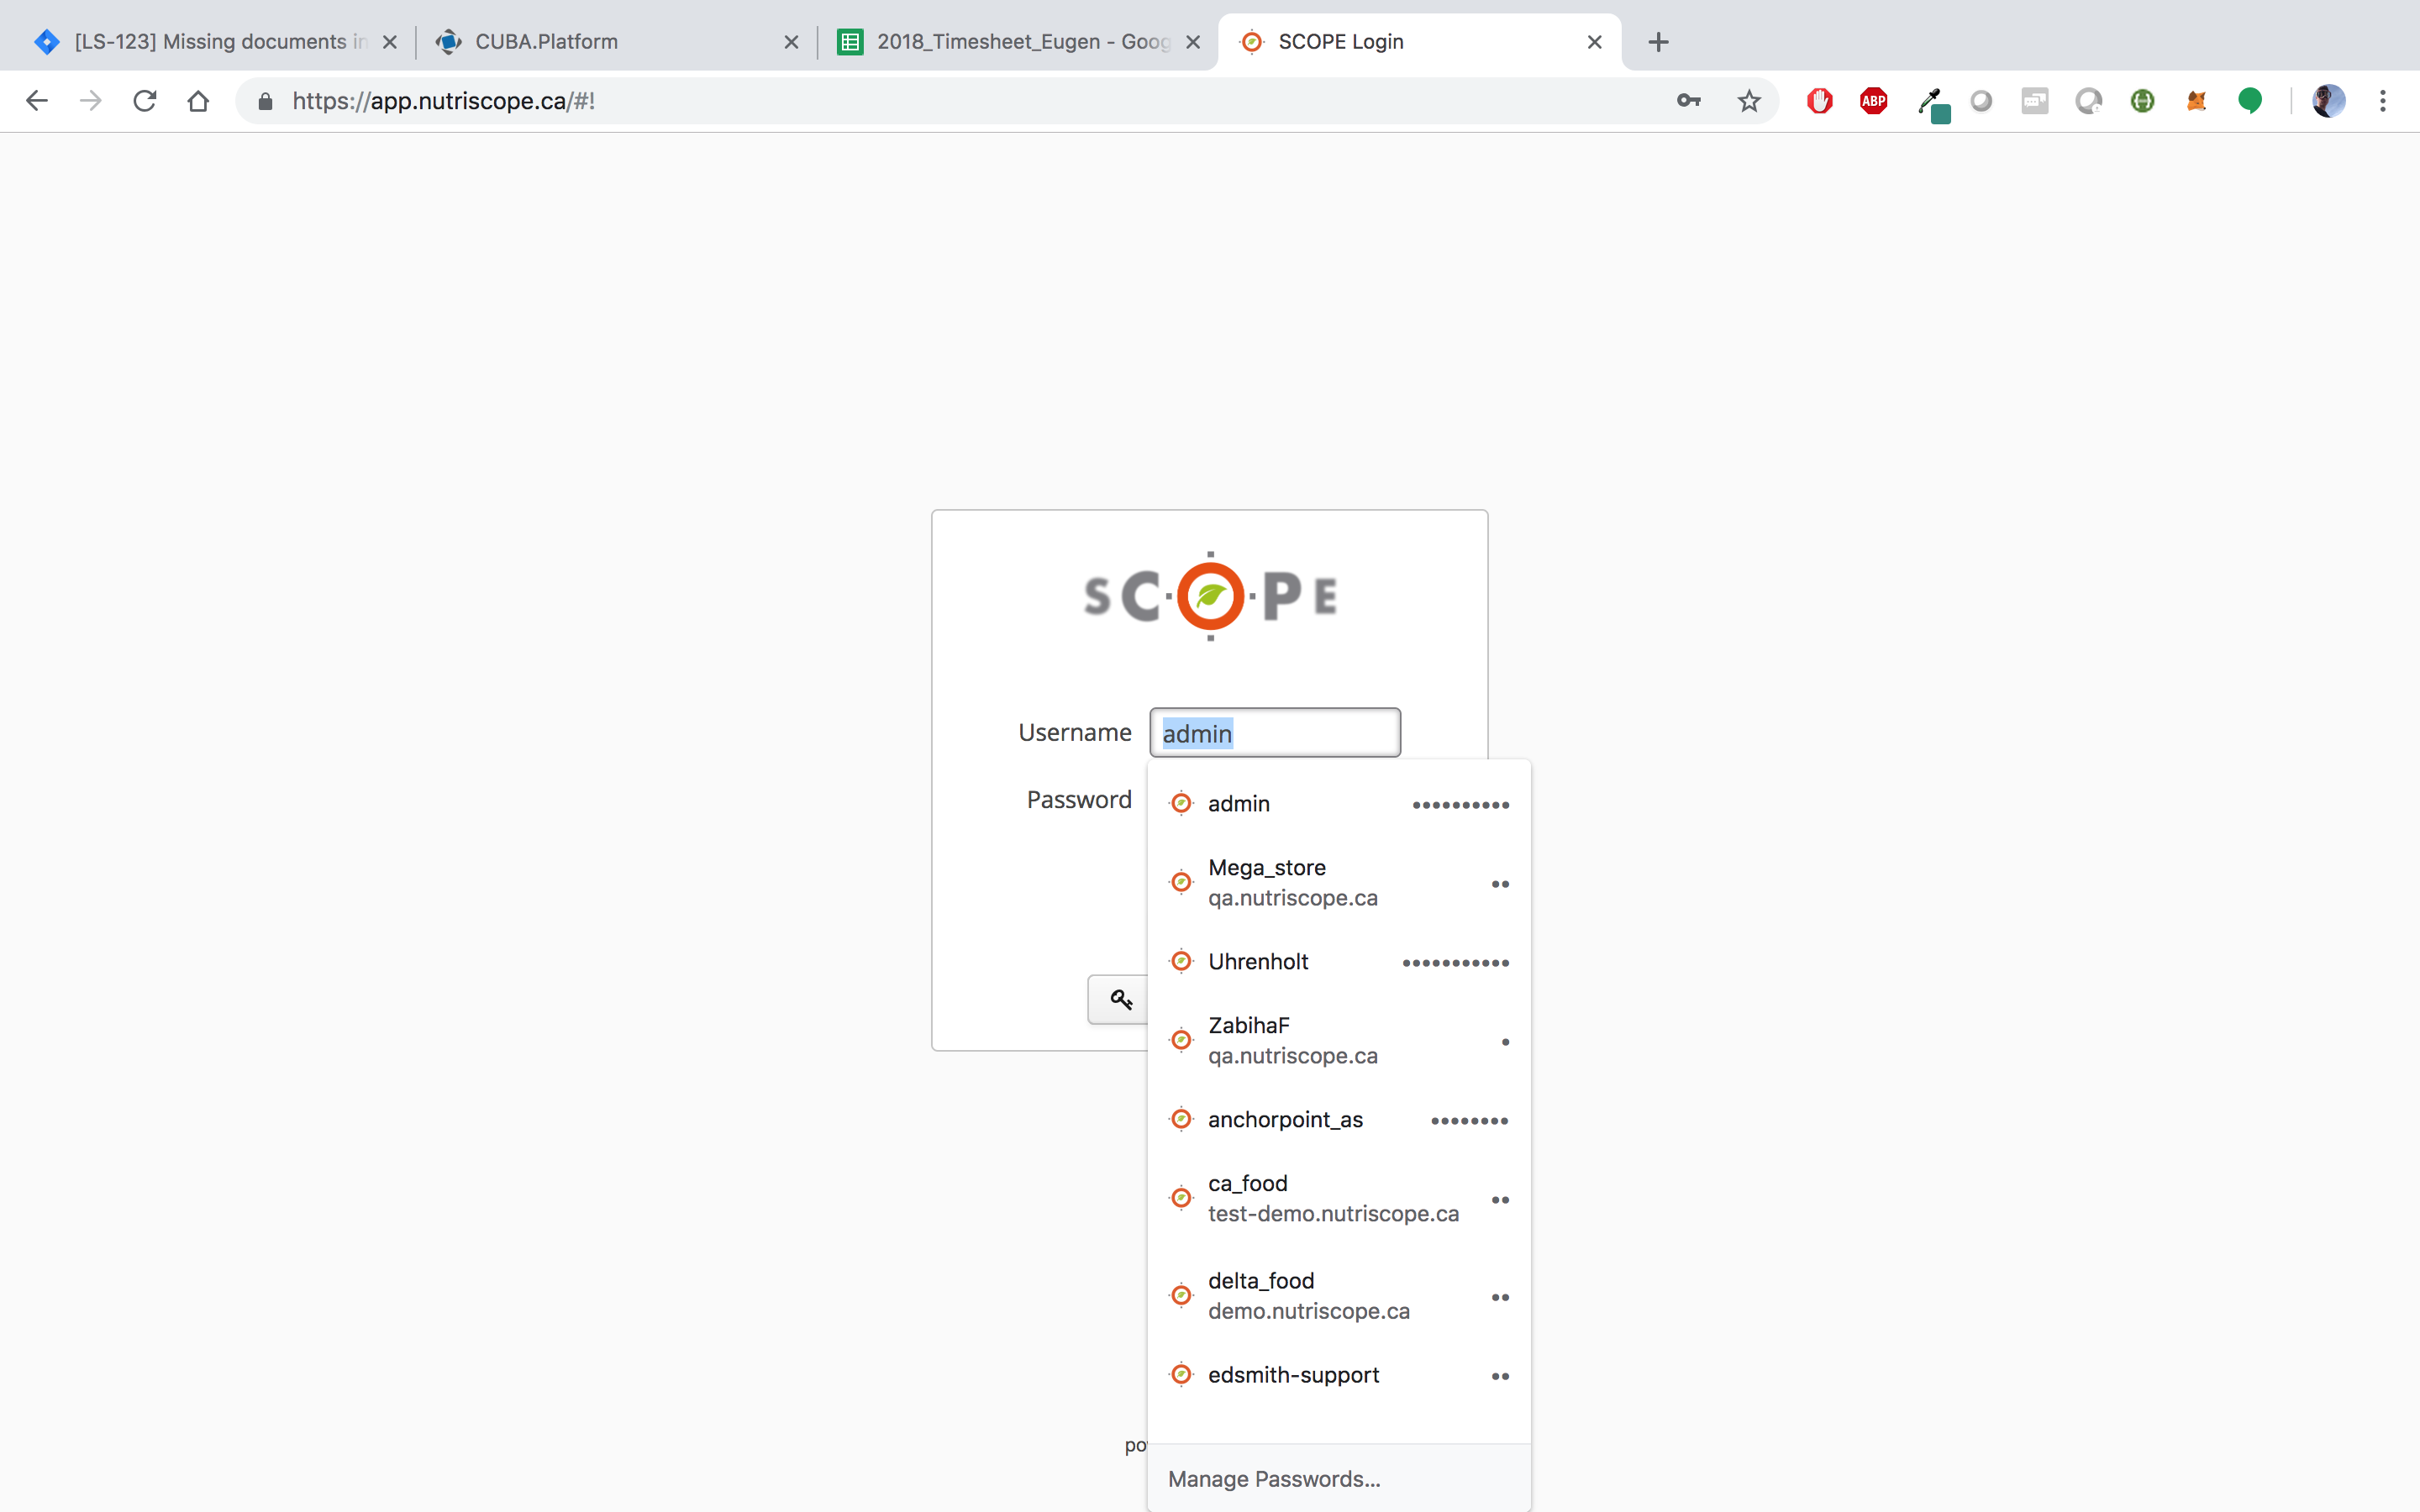 Browser credentials autocomplete do not work with the hover